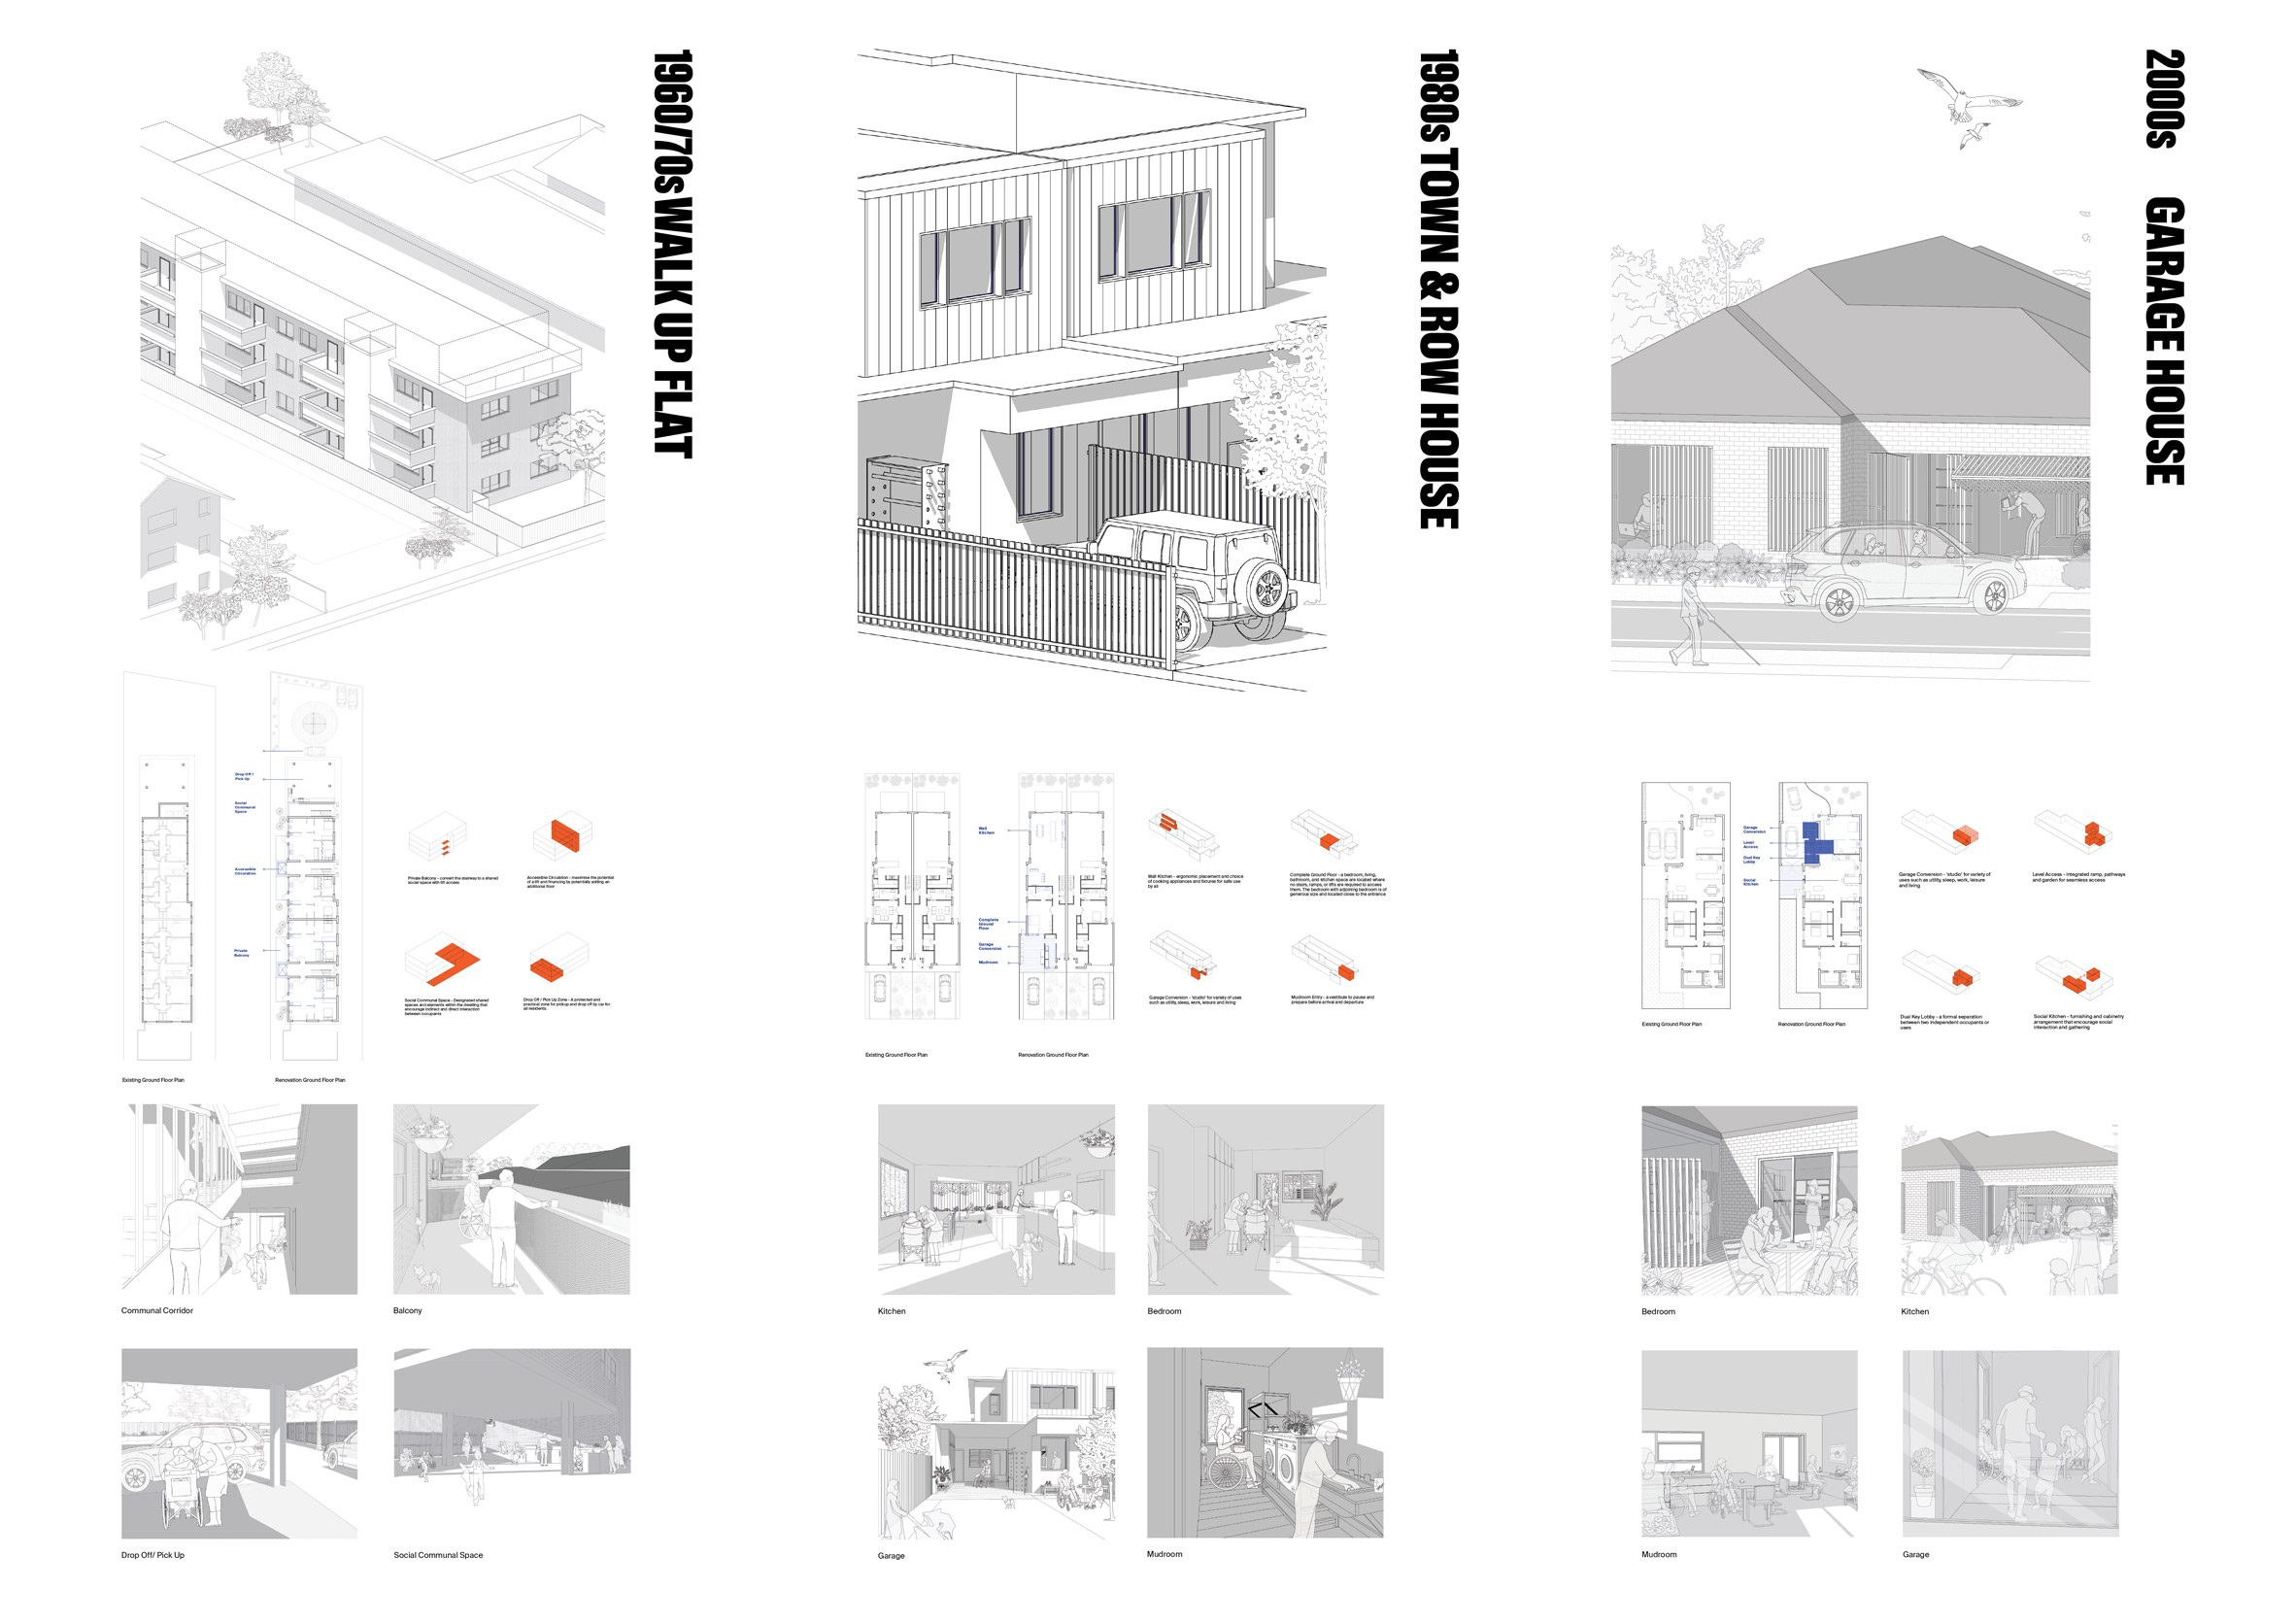 An image of a student retrofit research project